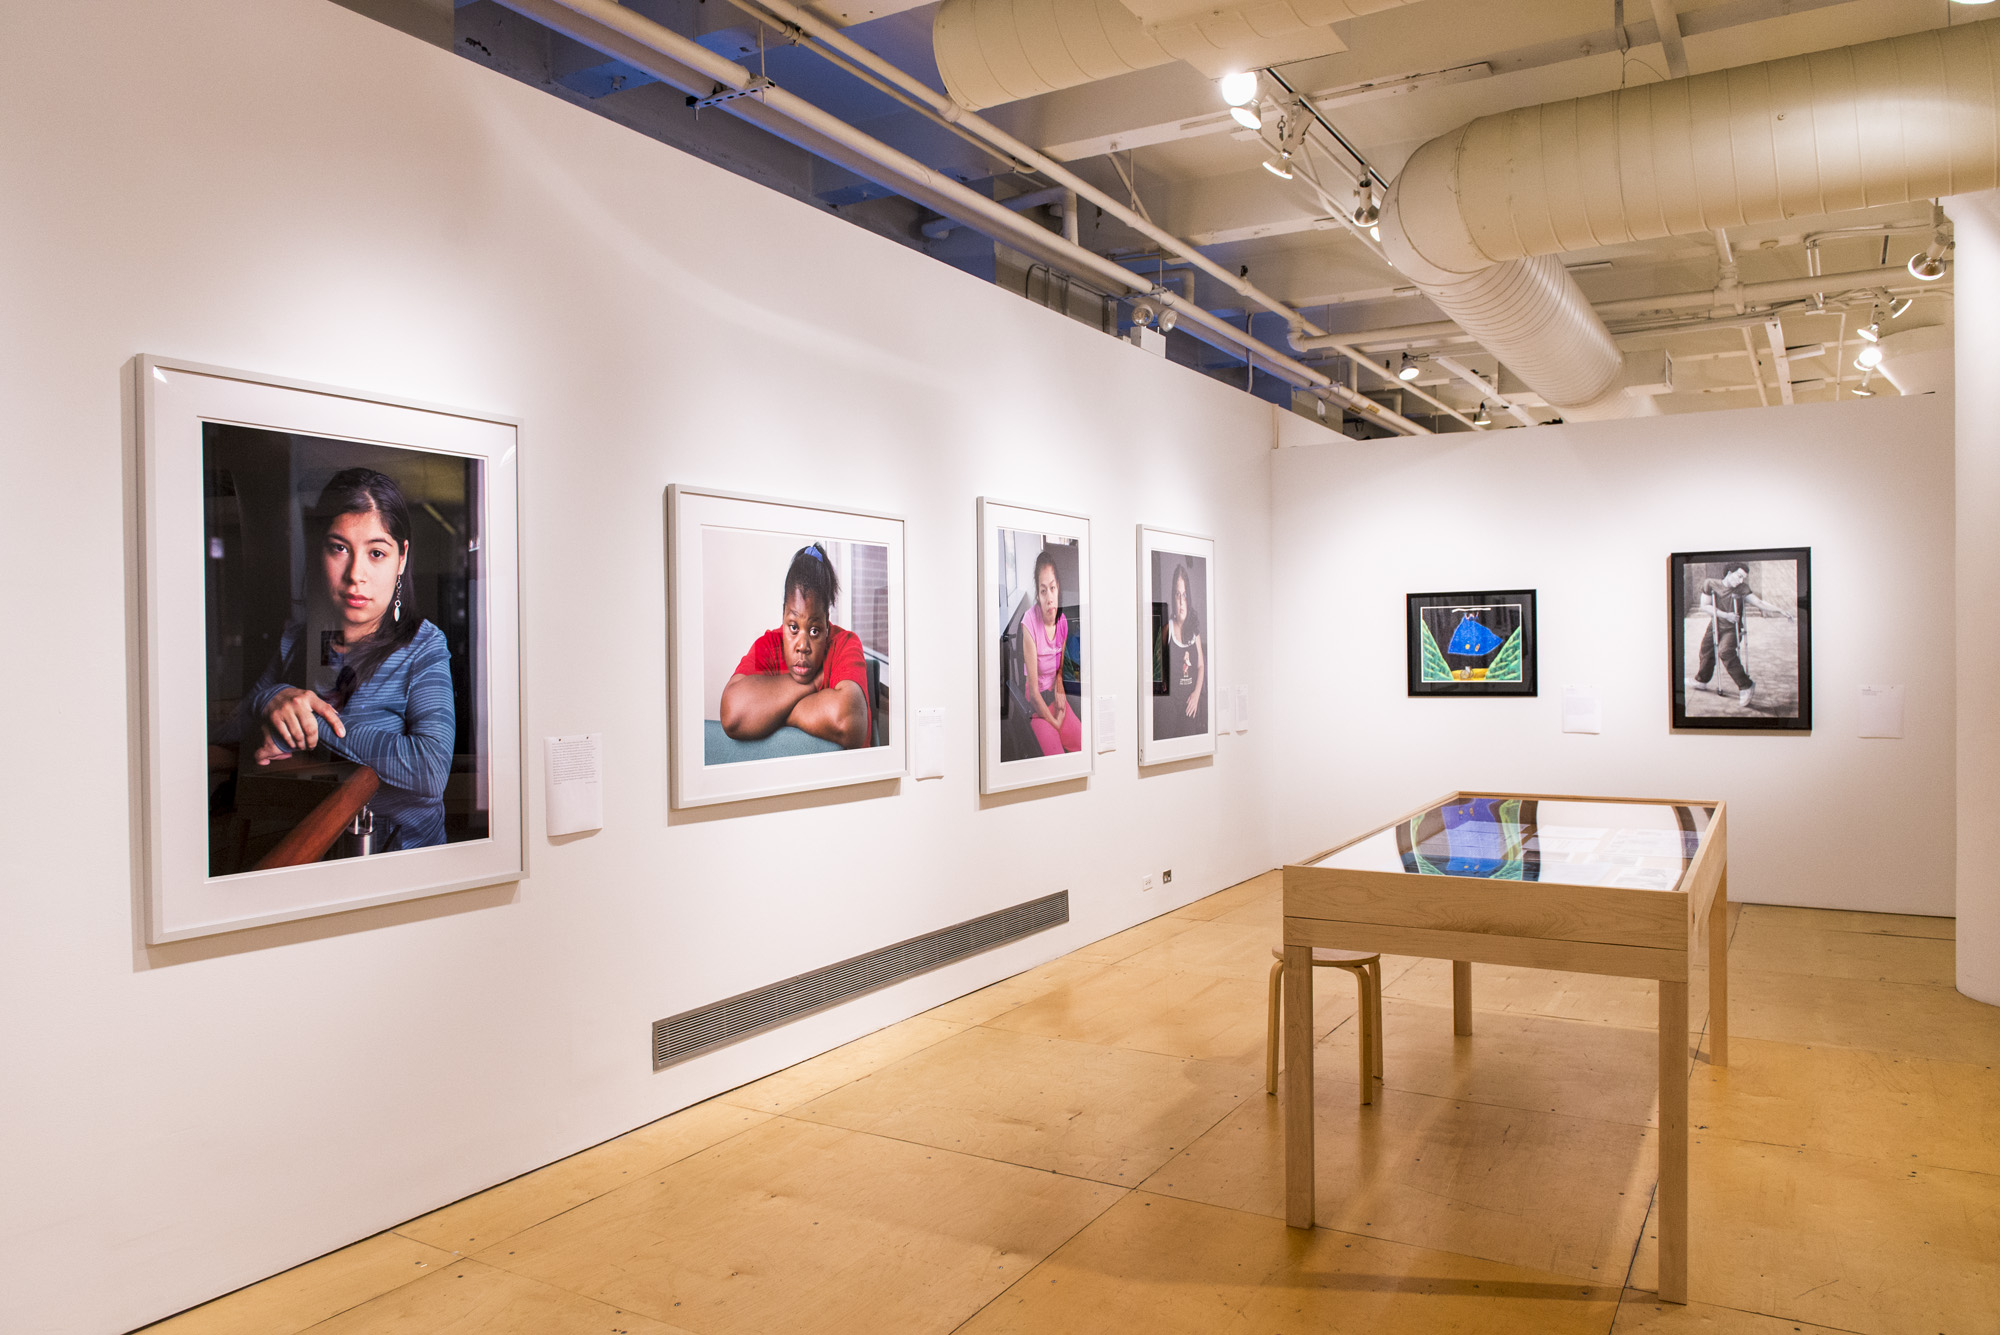 Image description: a view of two gallery walls featuring primarily large format photography portraits; to the right is a display table with printed ephemera. Photo by Ryan Edmund.